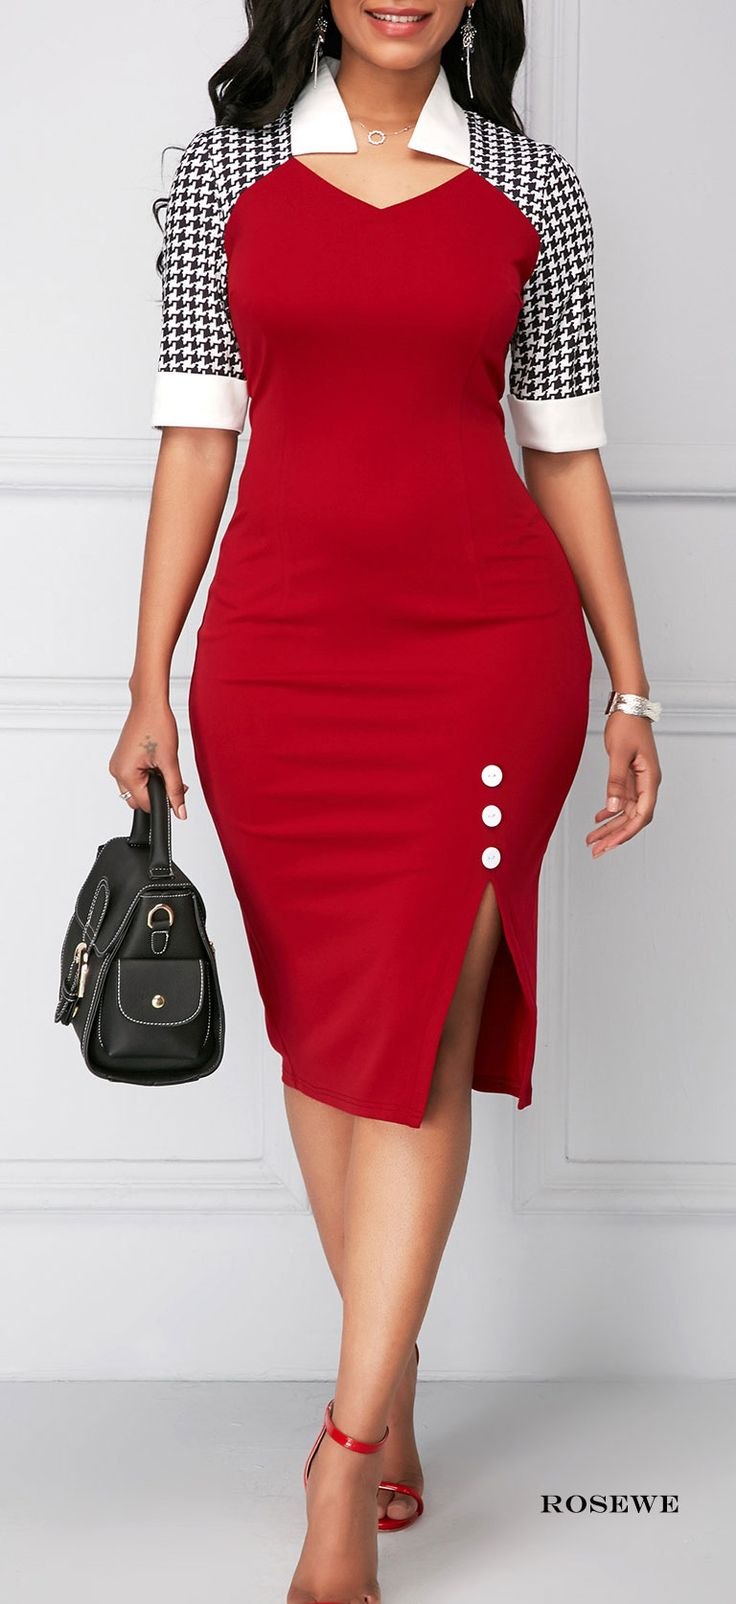 Cute dress for women at Rosewe.com, free shipping worldwide, check it out.